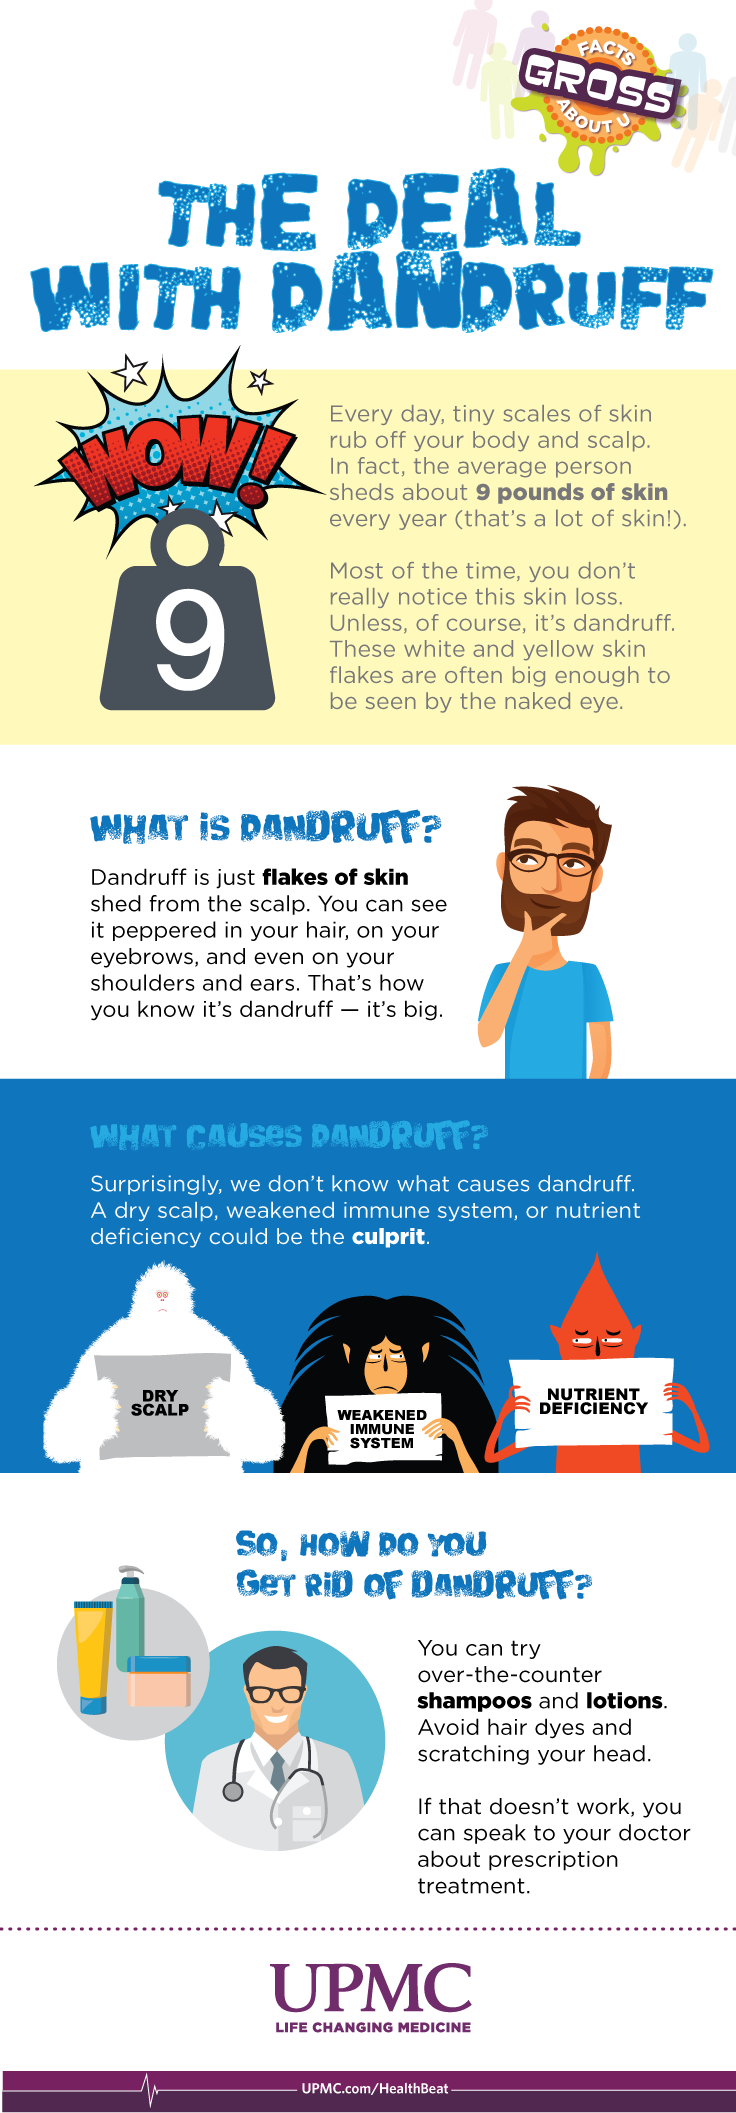 Learn more about dandruff